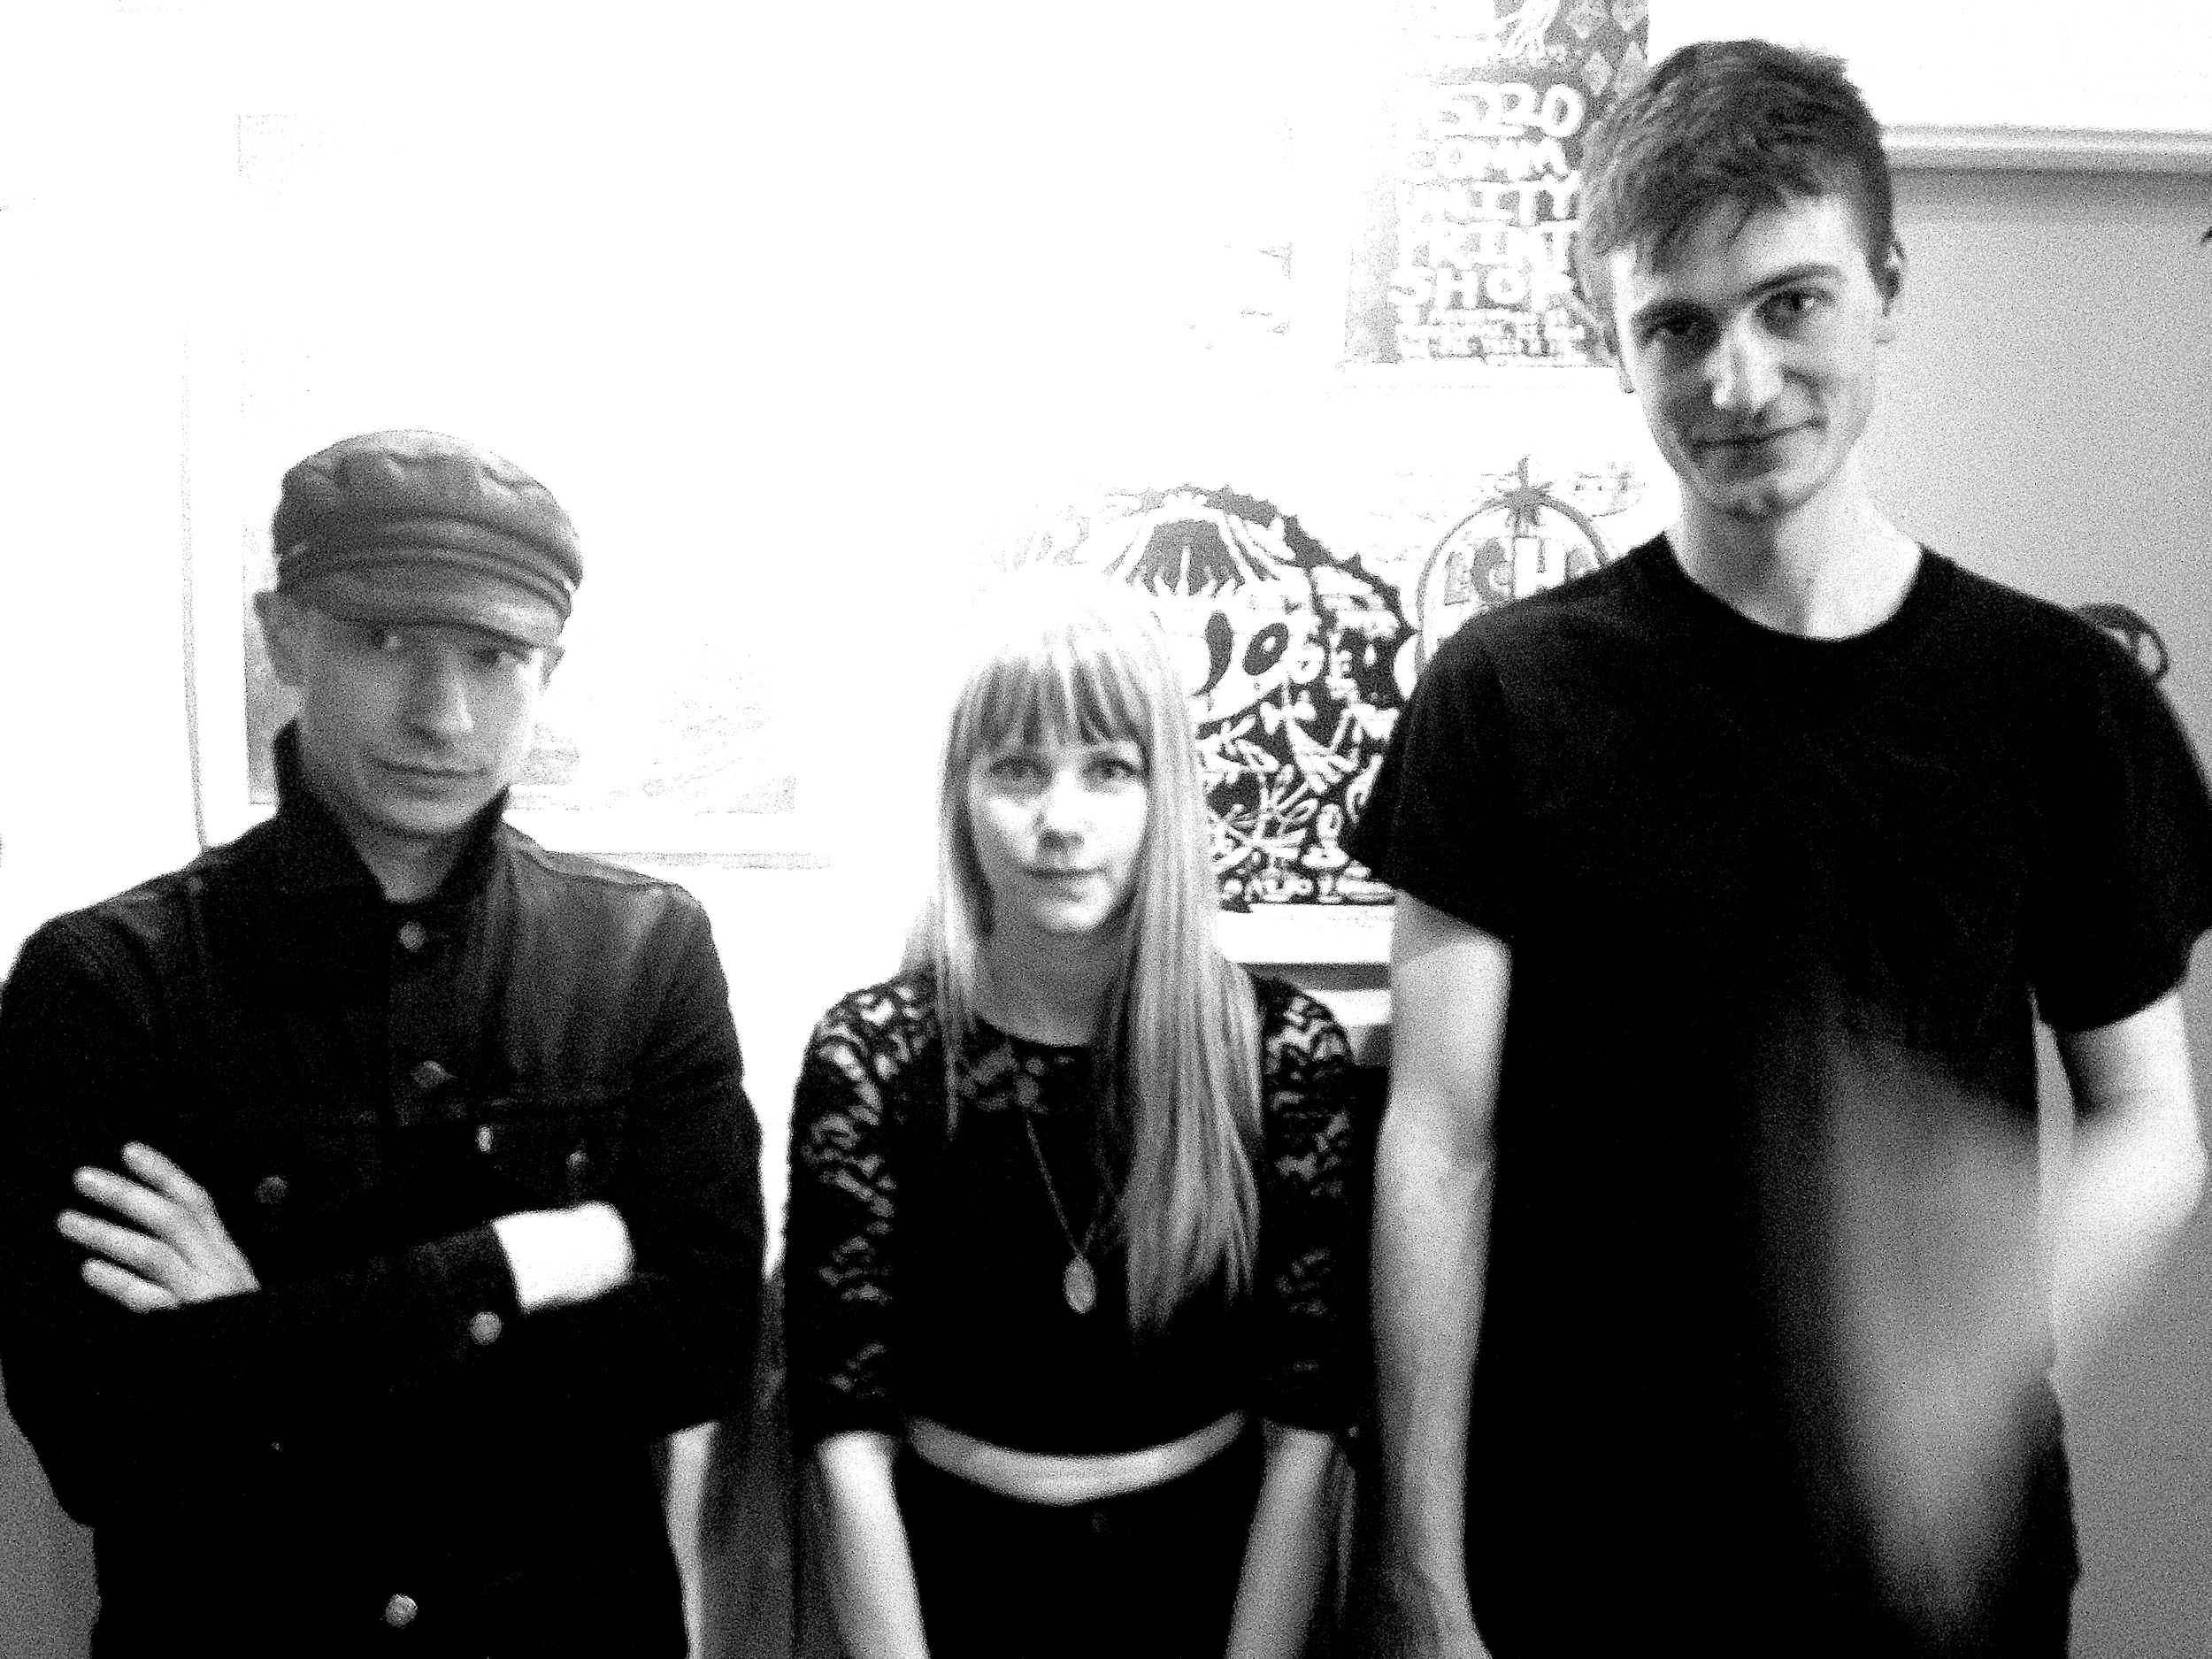 From left to right: bassist Nicholas Sadler, drummer Anna Wingfield, and vocalist /lead guitaristDerek Knox.